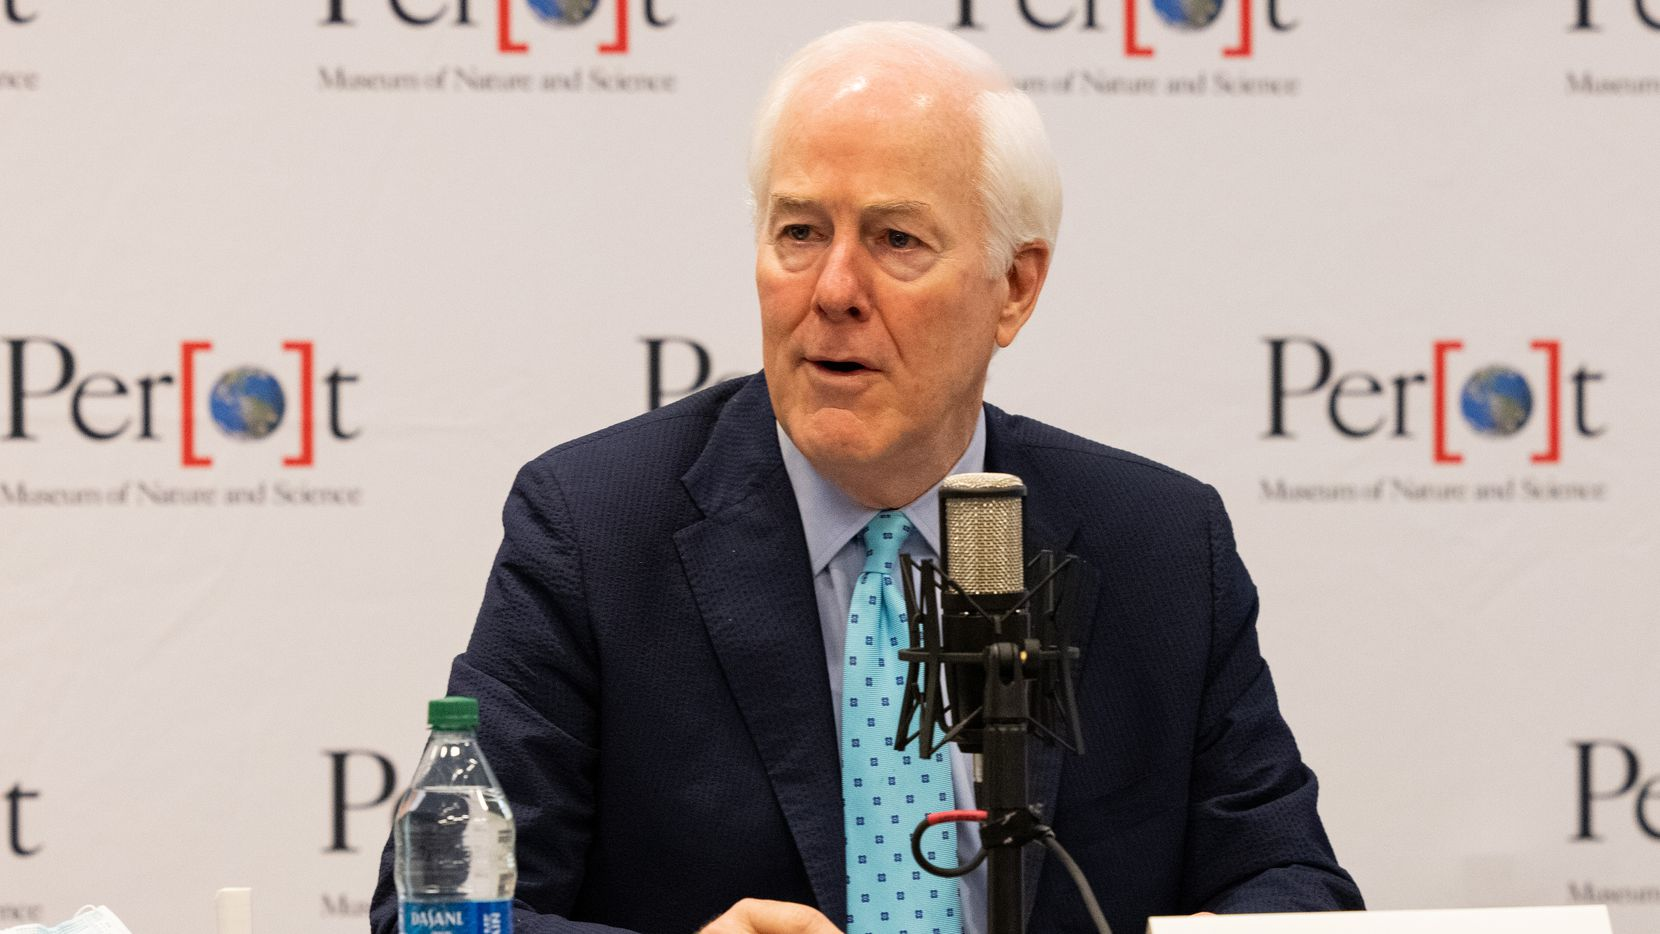 U.S. Senator John Cornyn speaks during a roundtable discussing the semiconductor shortages impact on manufacturing in North Texas at the Perot Museum of Nature and Science on May 6, 2021, in Dallas.